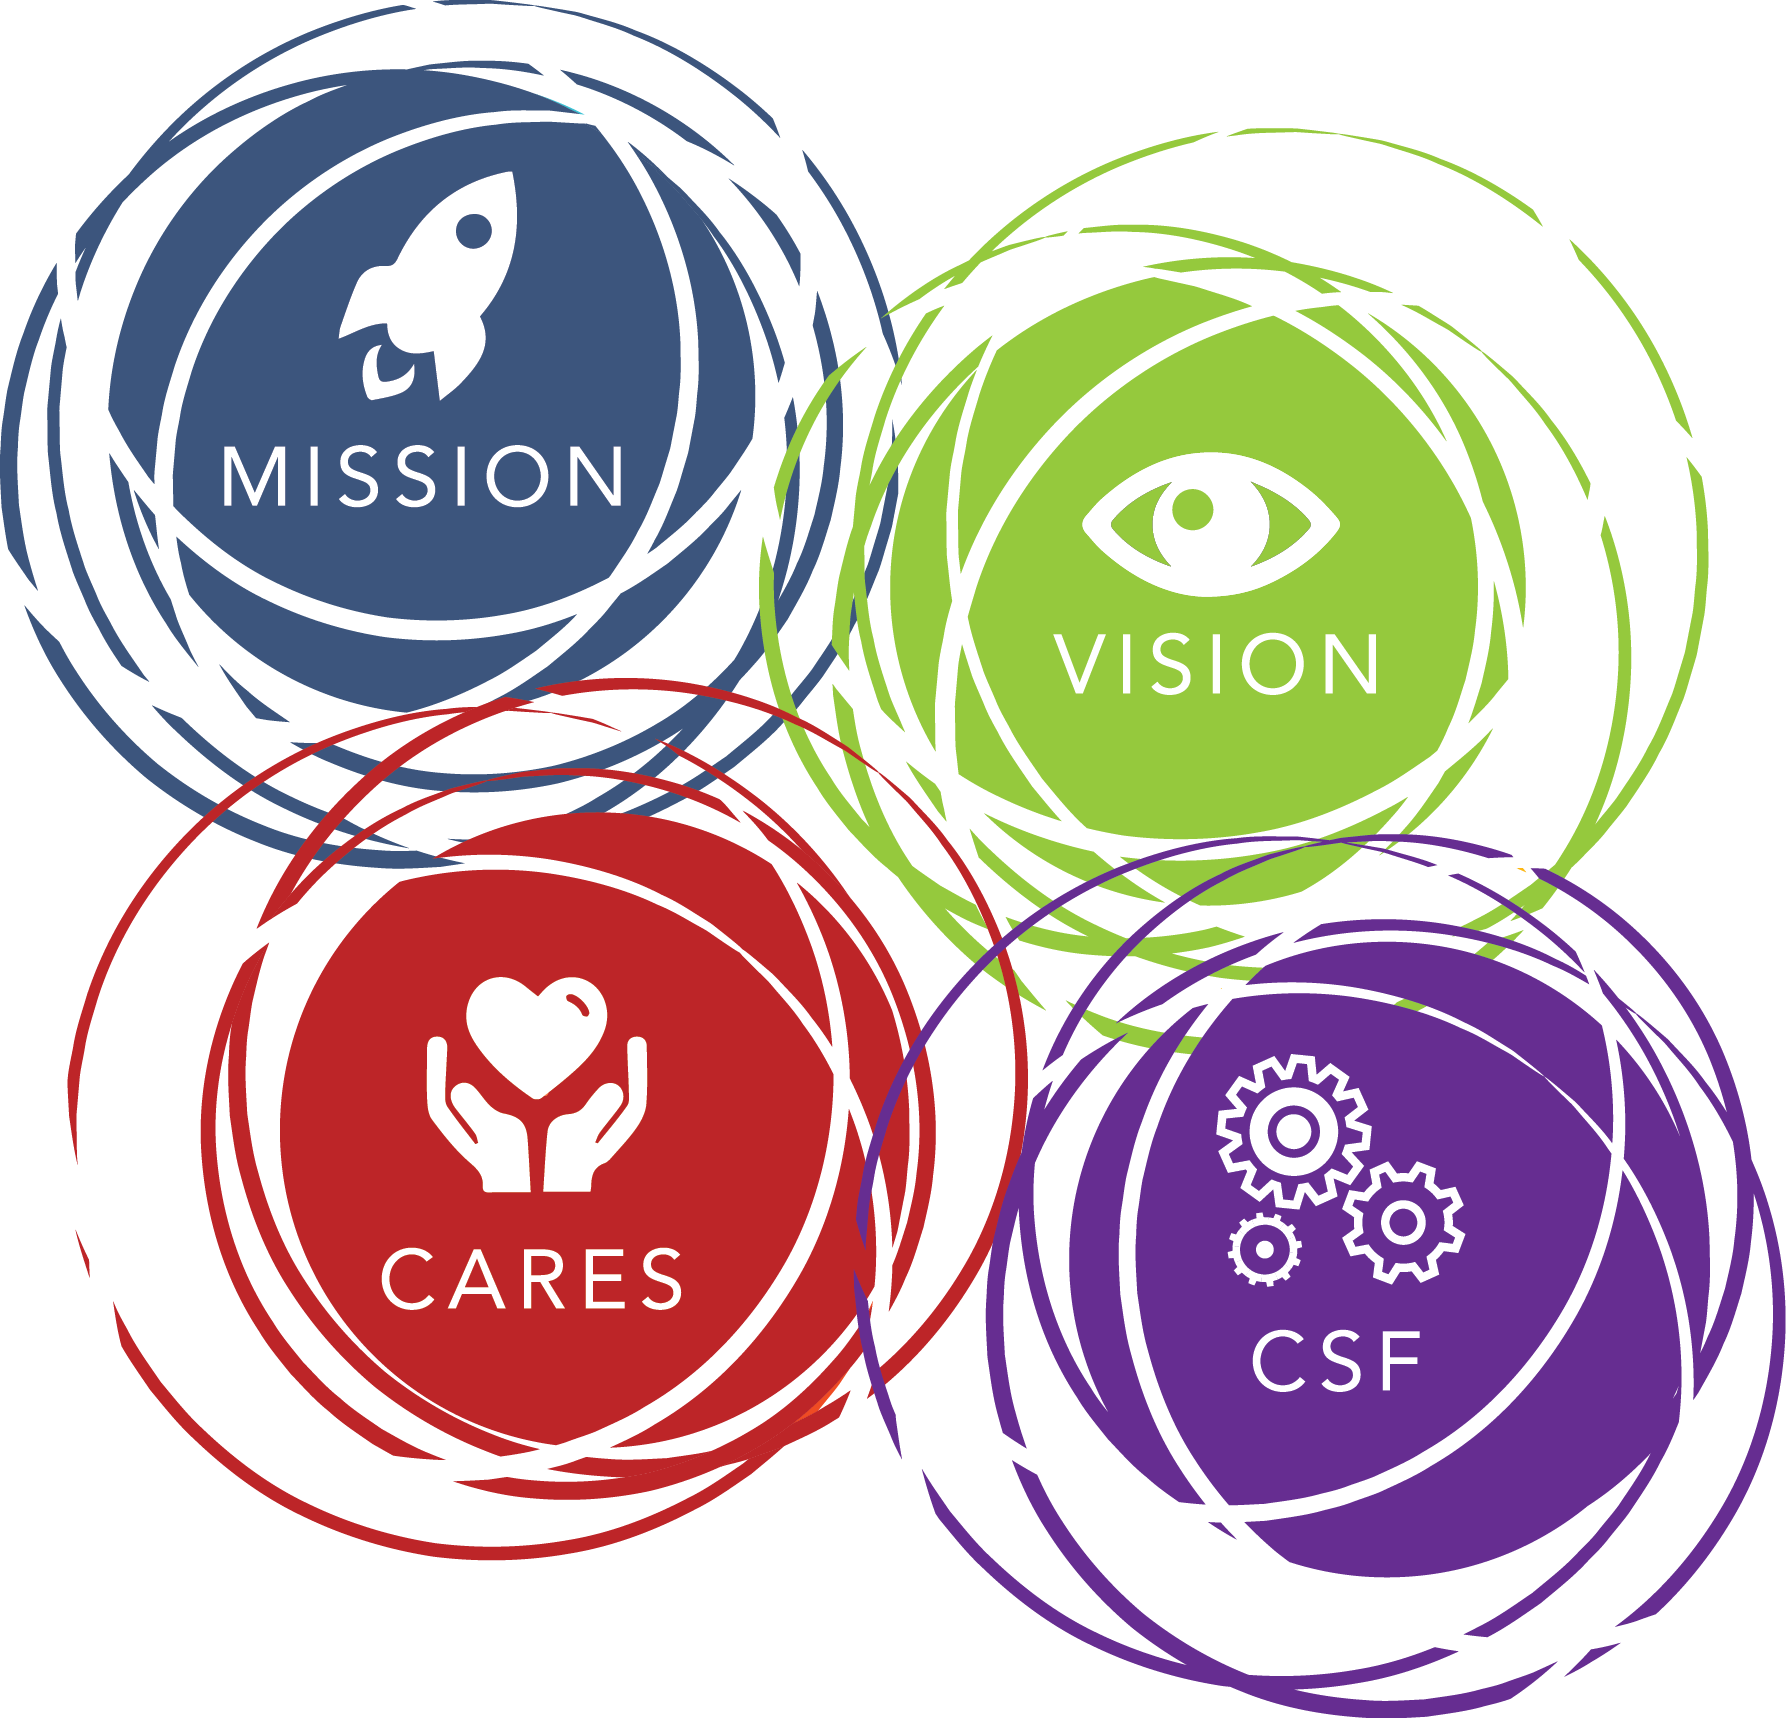 Mission, Vision and Values set in artistic, colorful circles